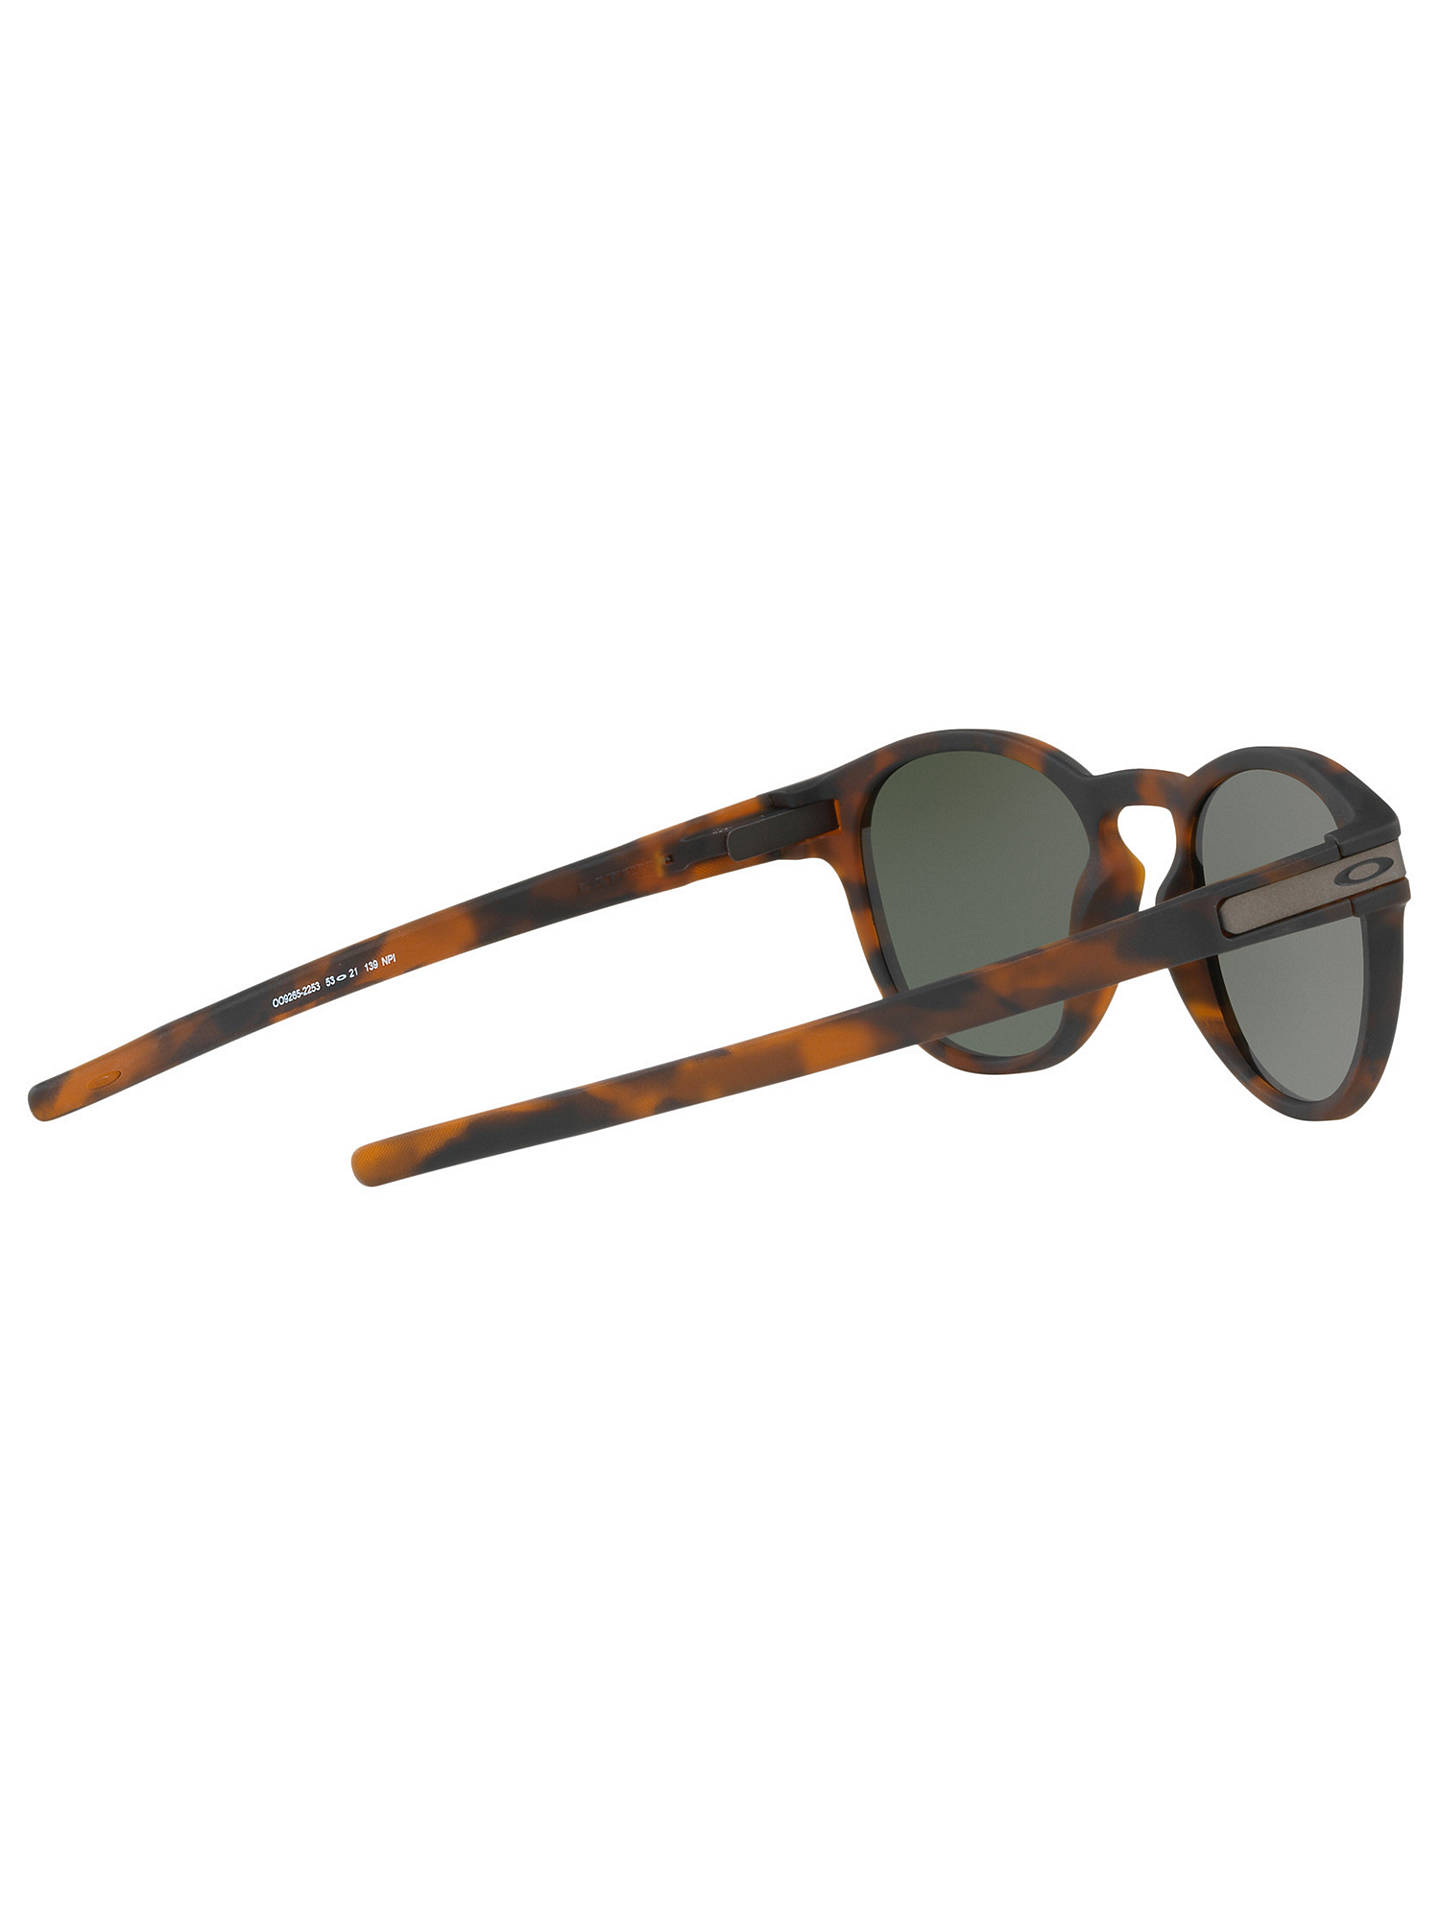 49c34fc03d309 Oakley OO9265 Men s Latch Round Sunglasses at John Lewis   Partners